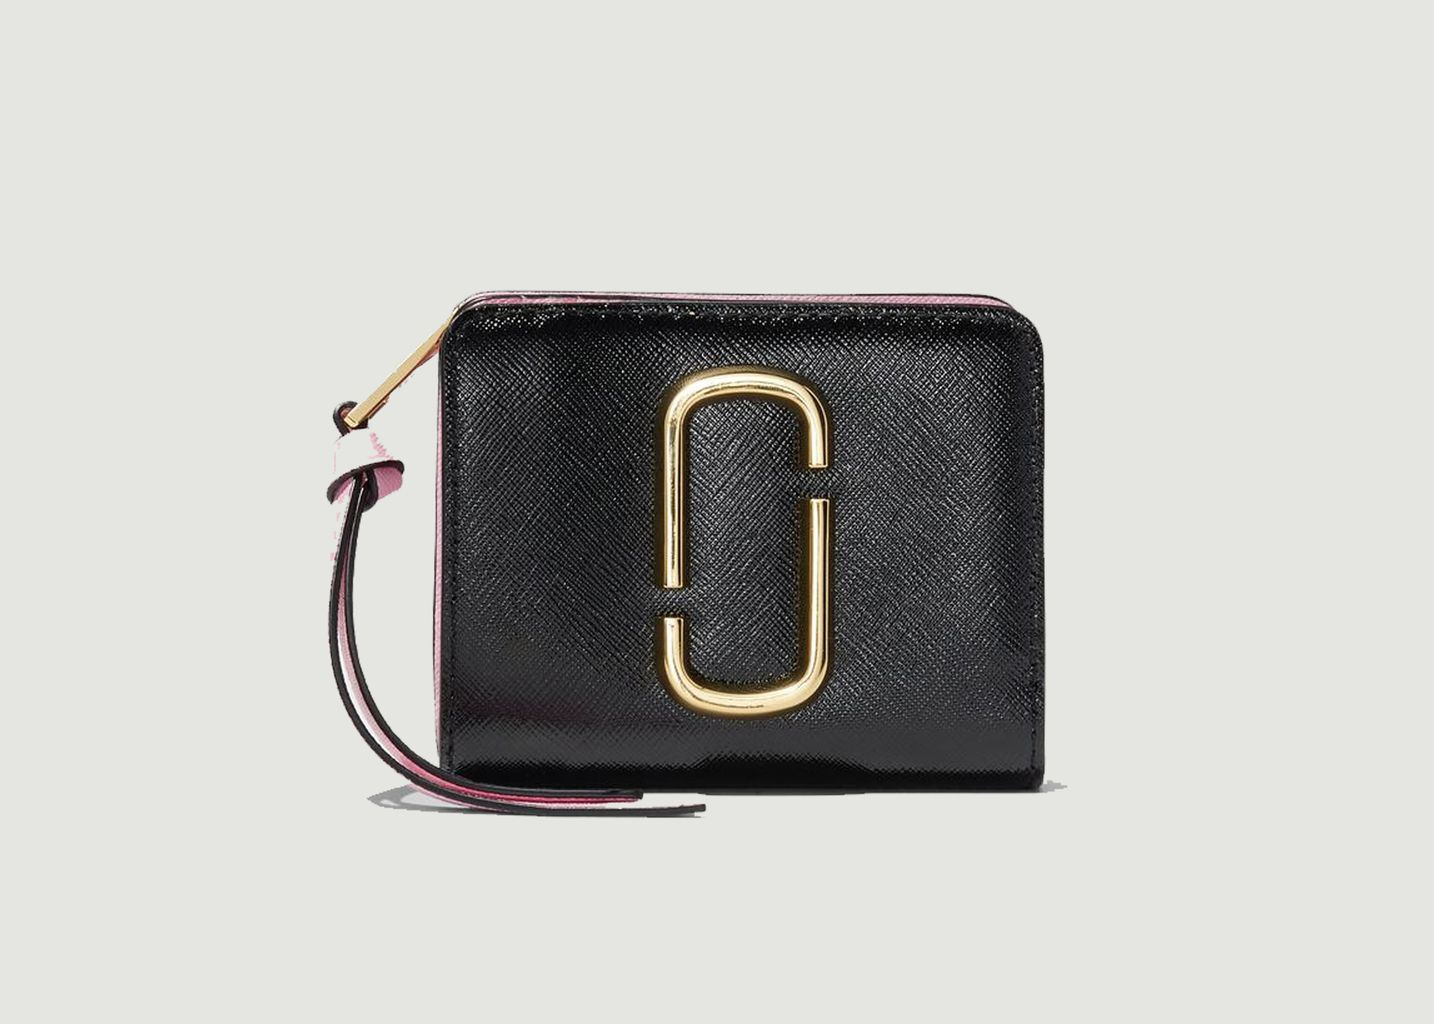 Portefeuille en cuir The Snapshot Mini Compact - The Marc Jacobs